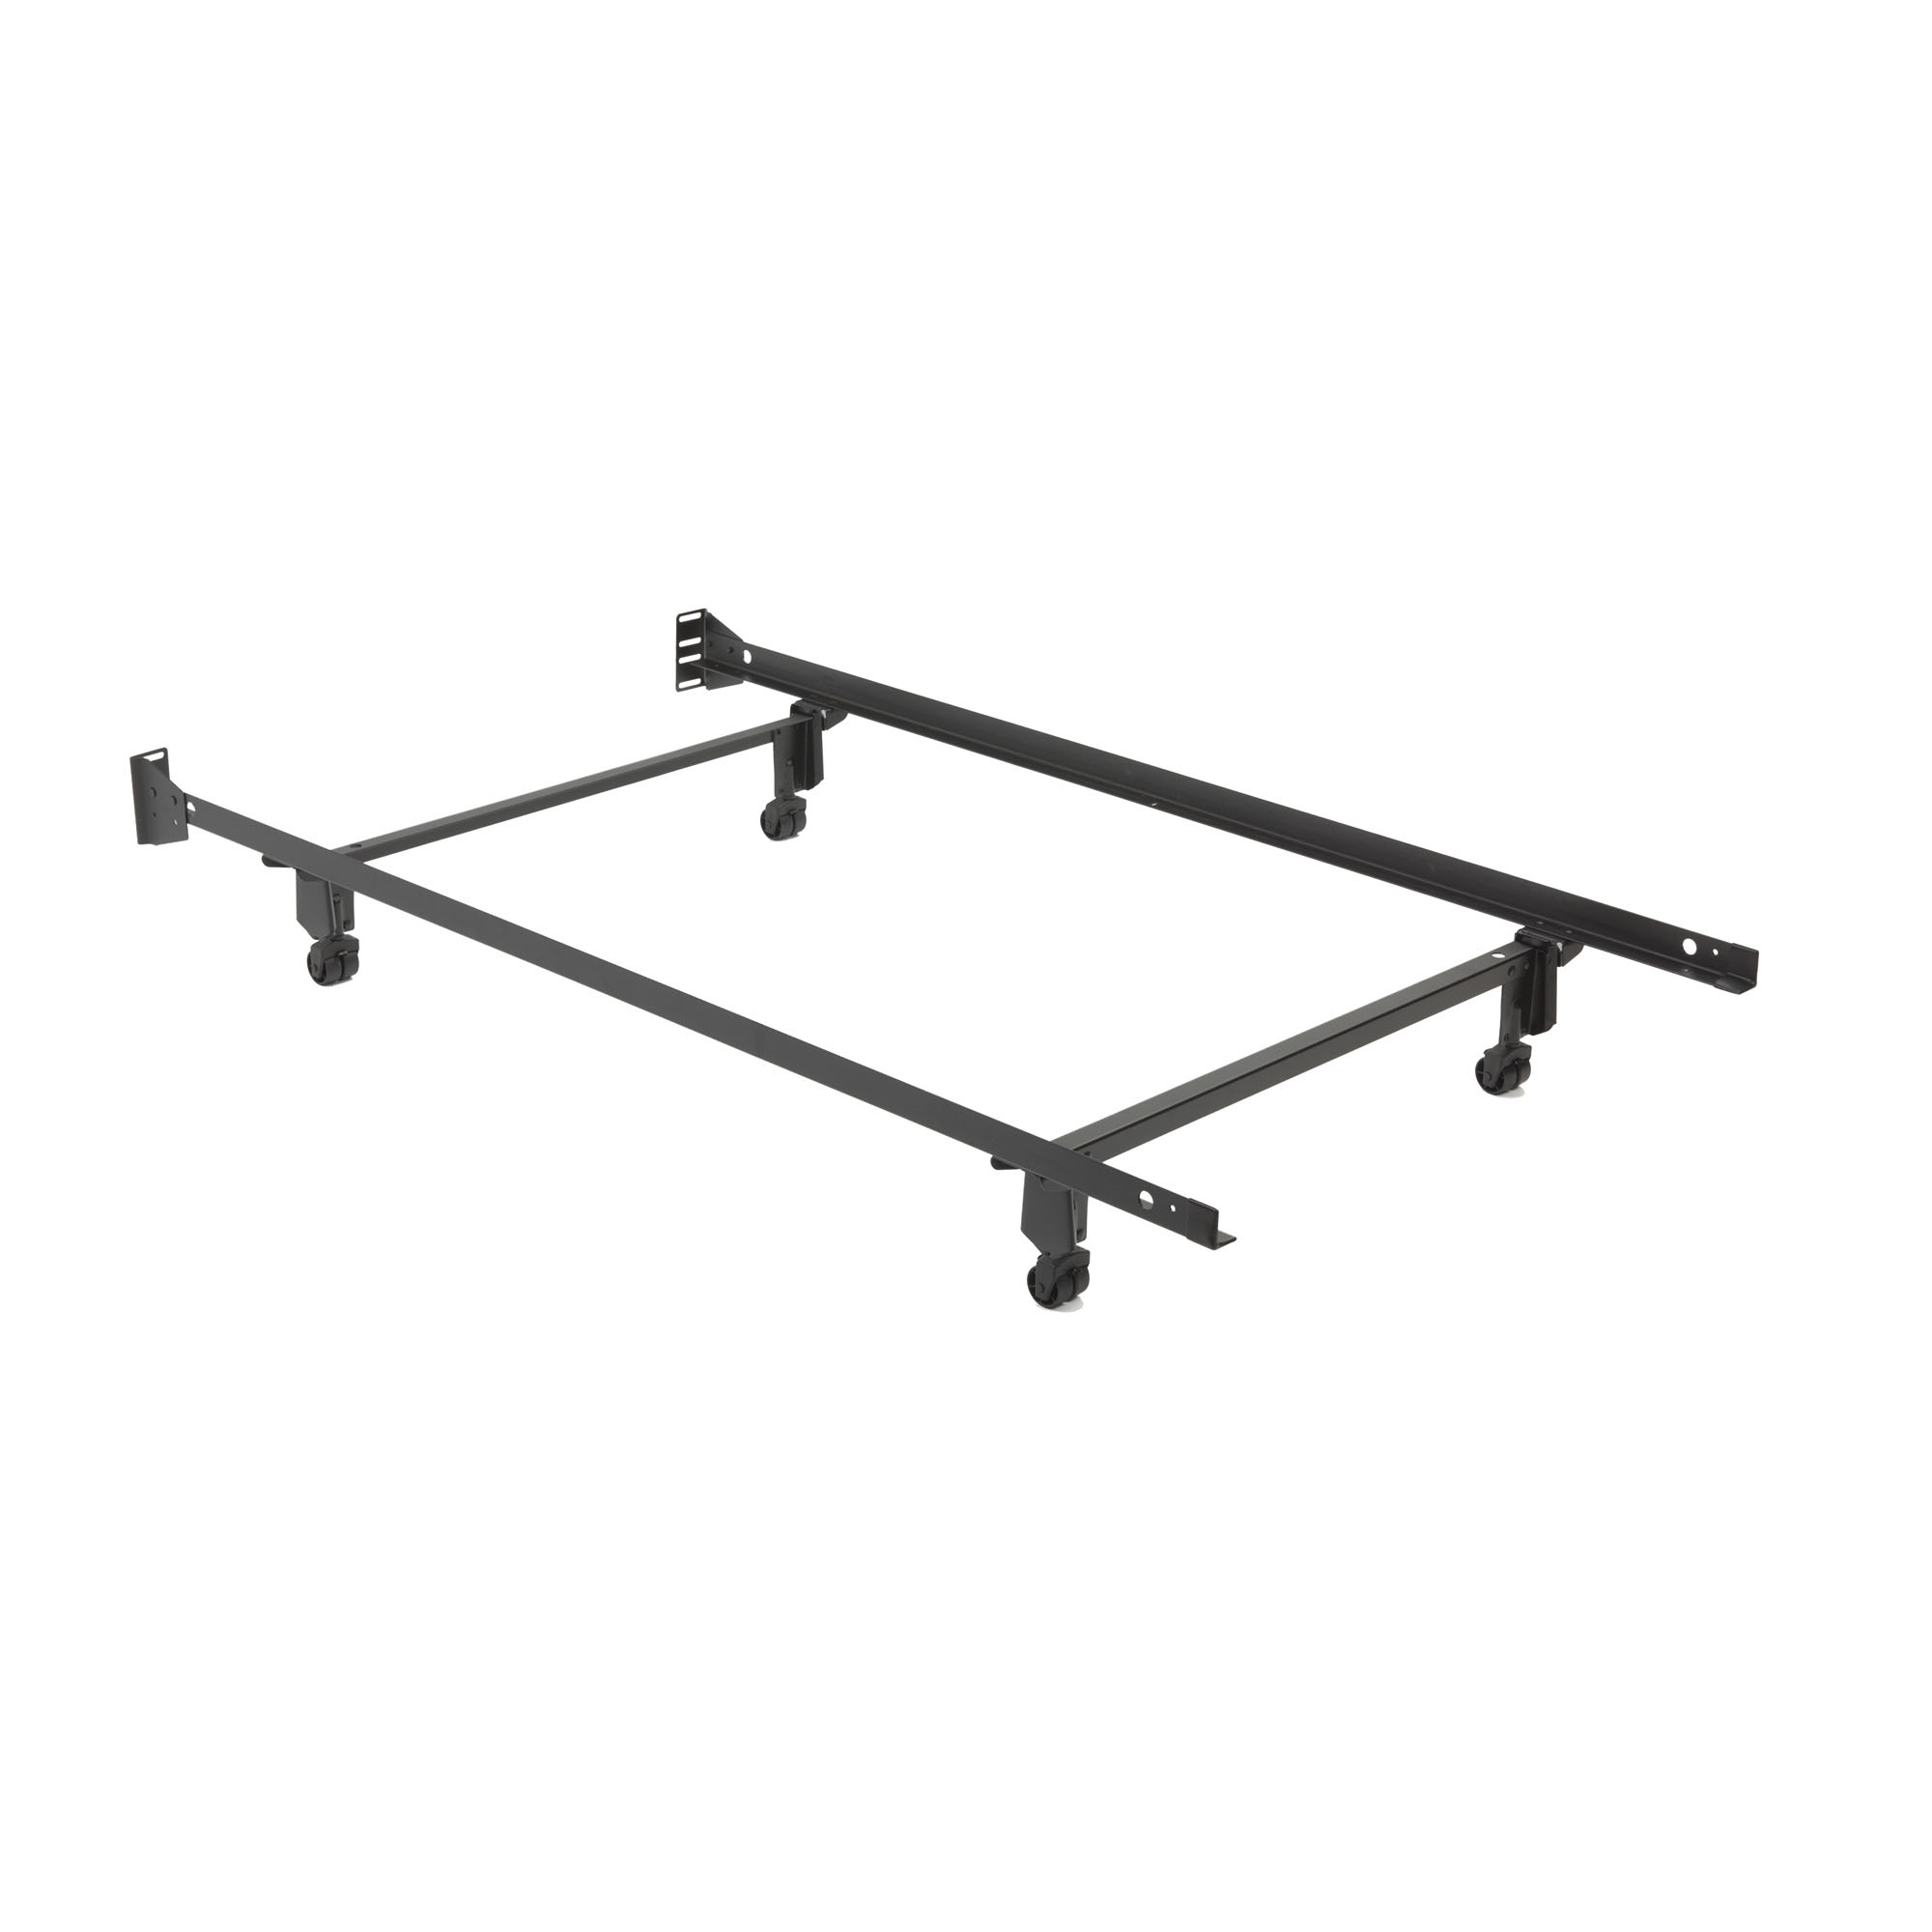 420052Fashion Bed Group Inst-A-Matic Premium 738R Bed Frame with ...